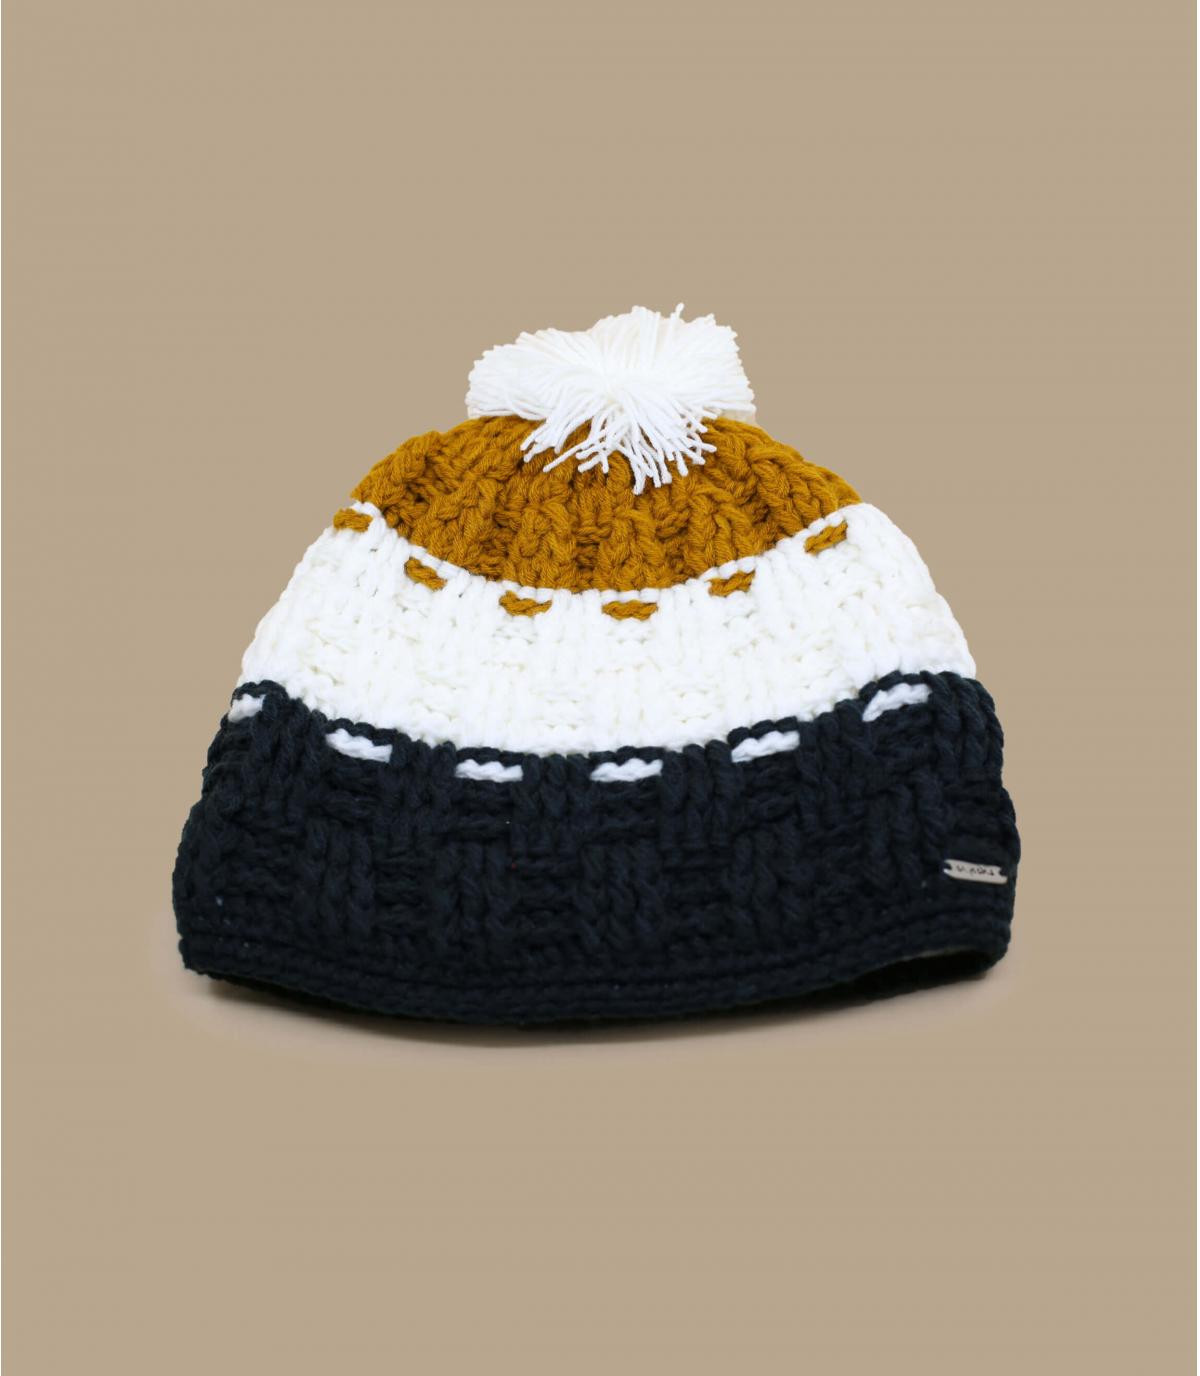 Details Epicé curry beanie - afbeeling 1